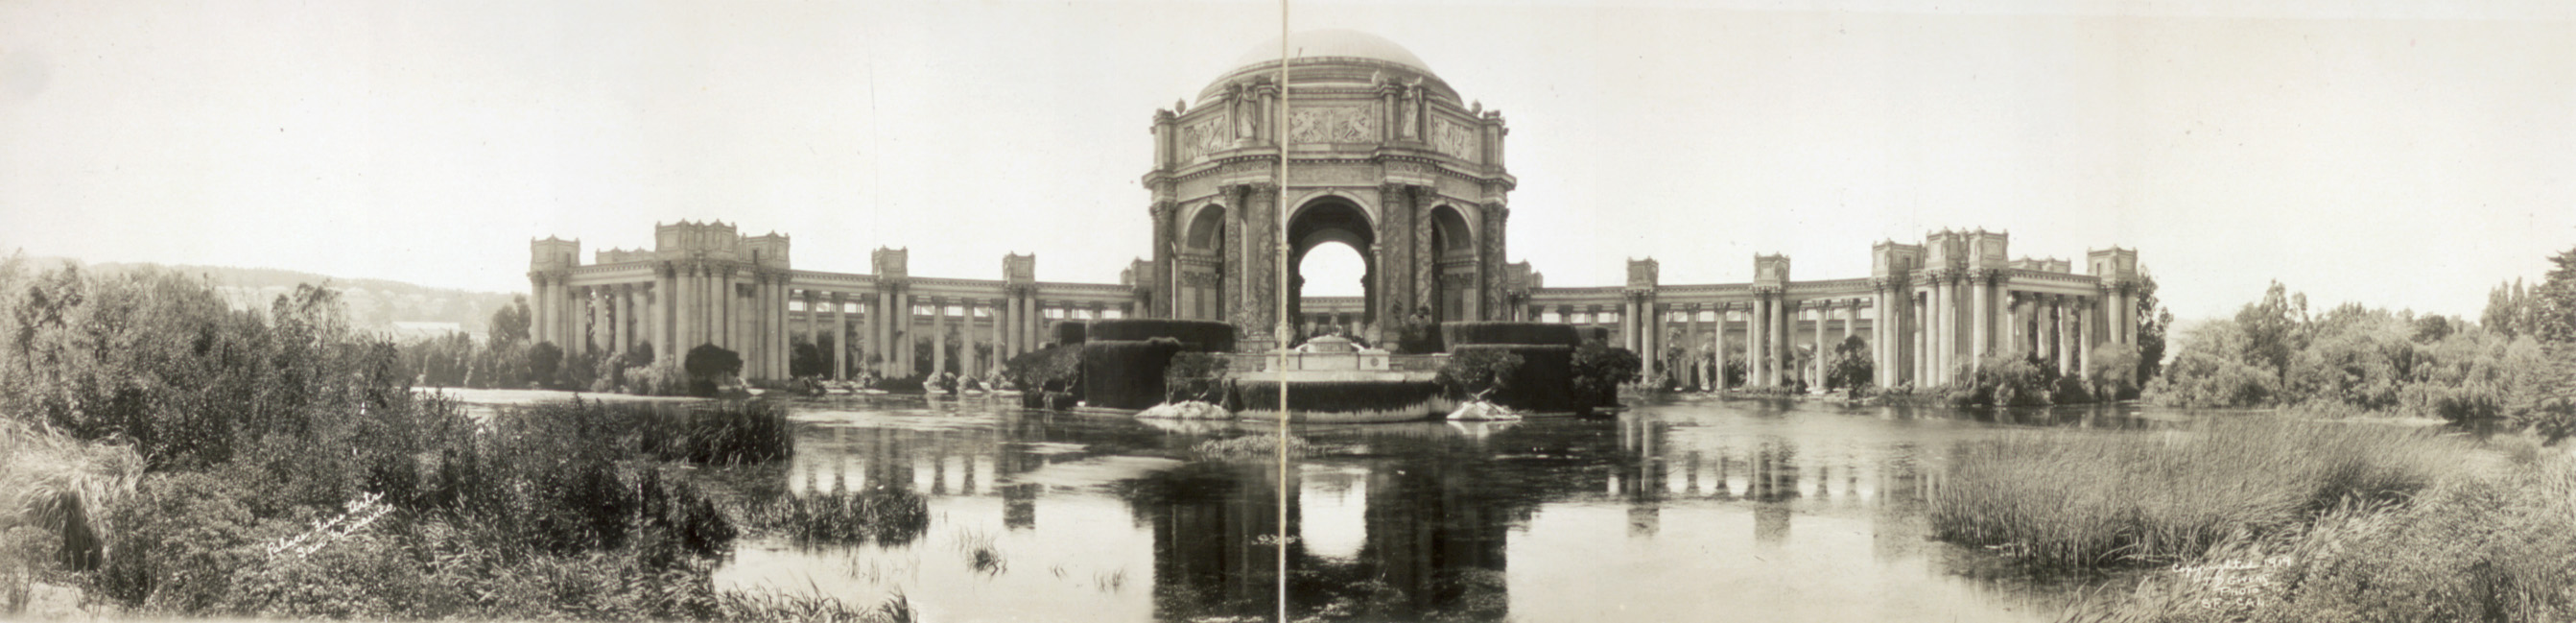 Palace Of Fine Arts Theatre  Digital Projection  Digital. Extra Storage Space Chicago P T S Transport. Huntington Junior College Online. Credit Cards With Reward Points. Differential Equations In Electrical Engineering. Mountain State University Clean Freaks Tulsa. How Much Divorce Lawyer Cost. Series 7 And 63 Licenses Fha Loan Application. 2010 Giants World Series Roster